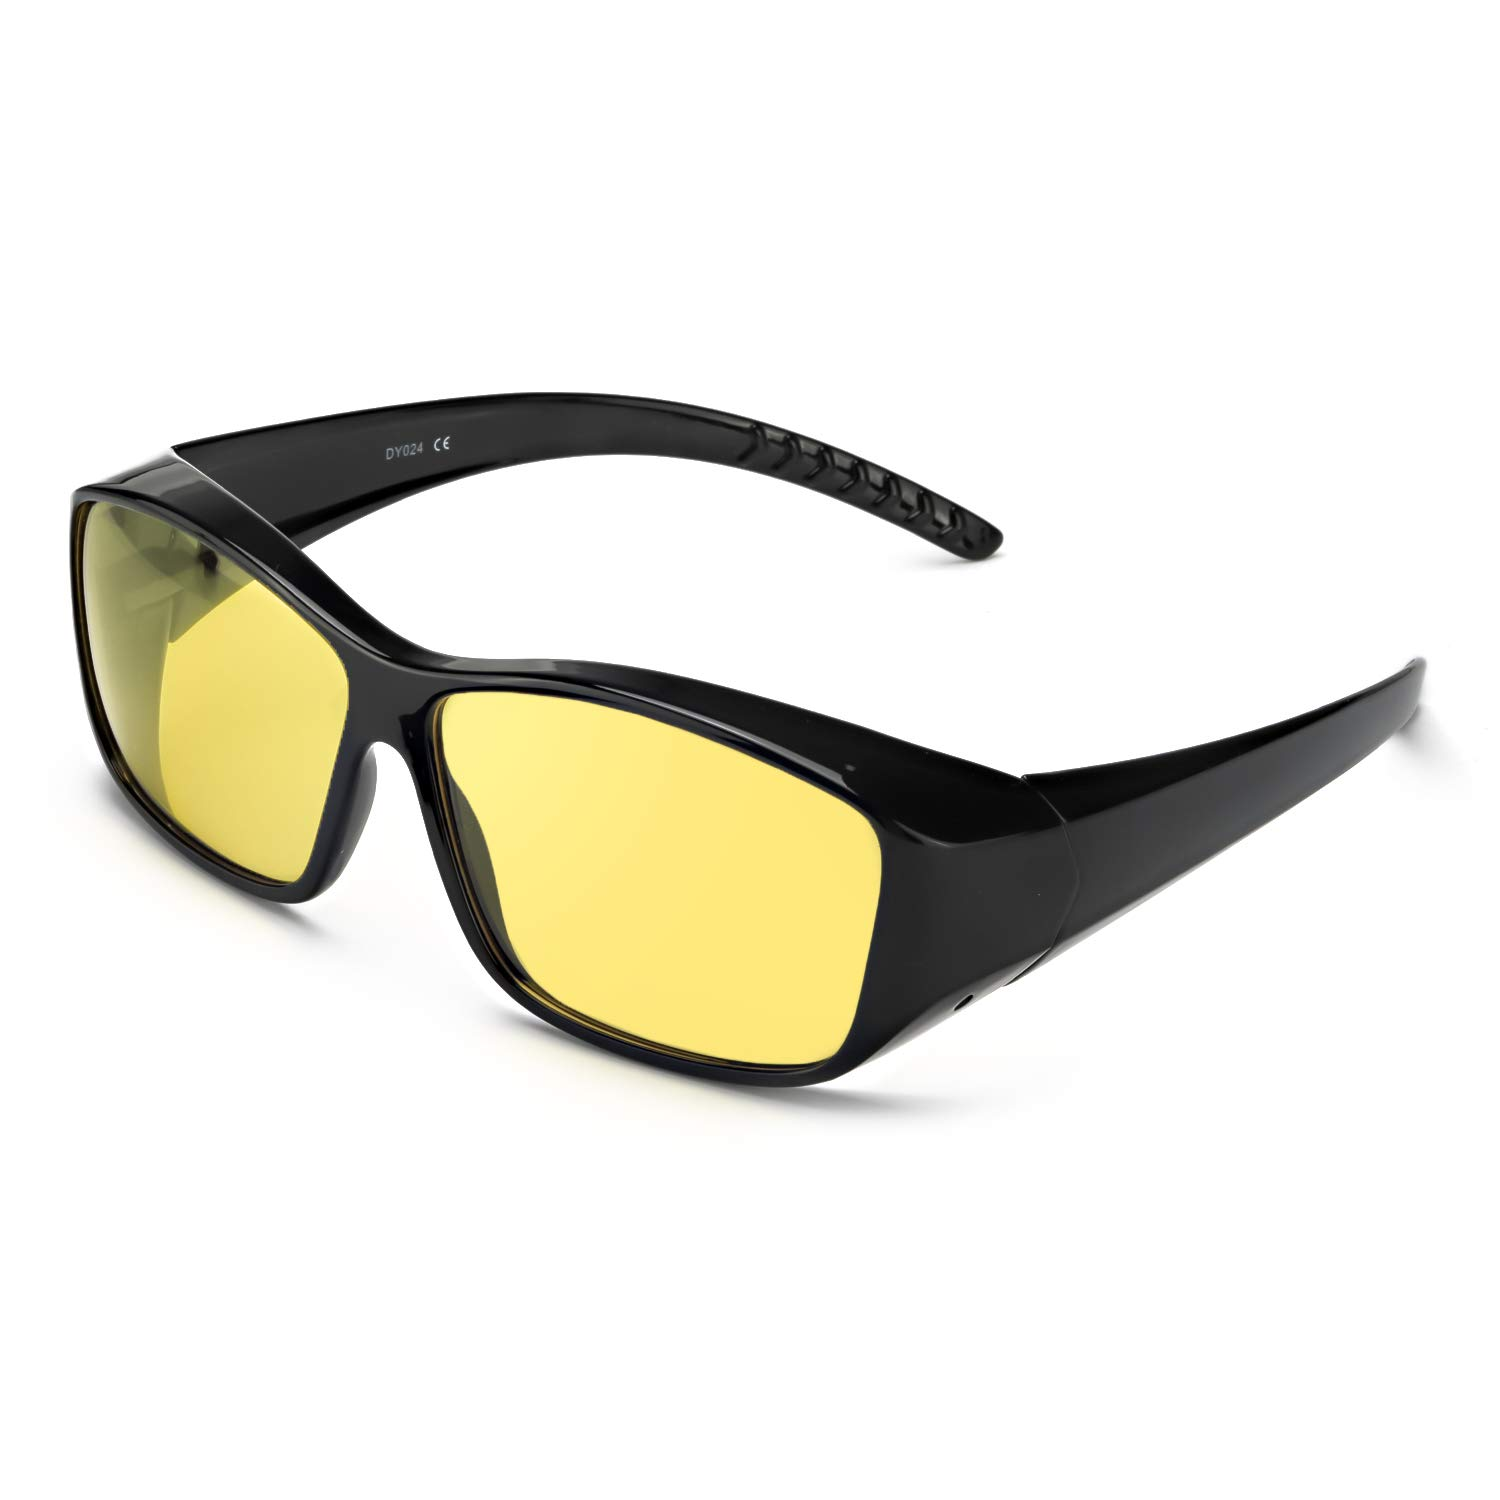 58b48422e6c Amazon.com  LVIOE Wrap Around Night Vision Glasses